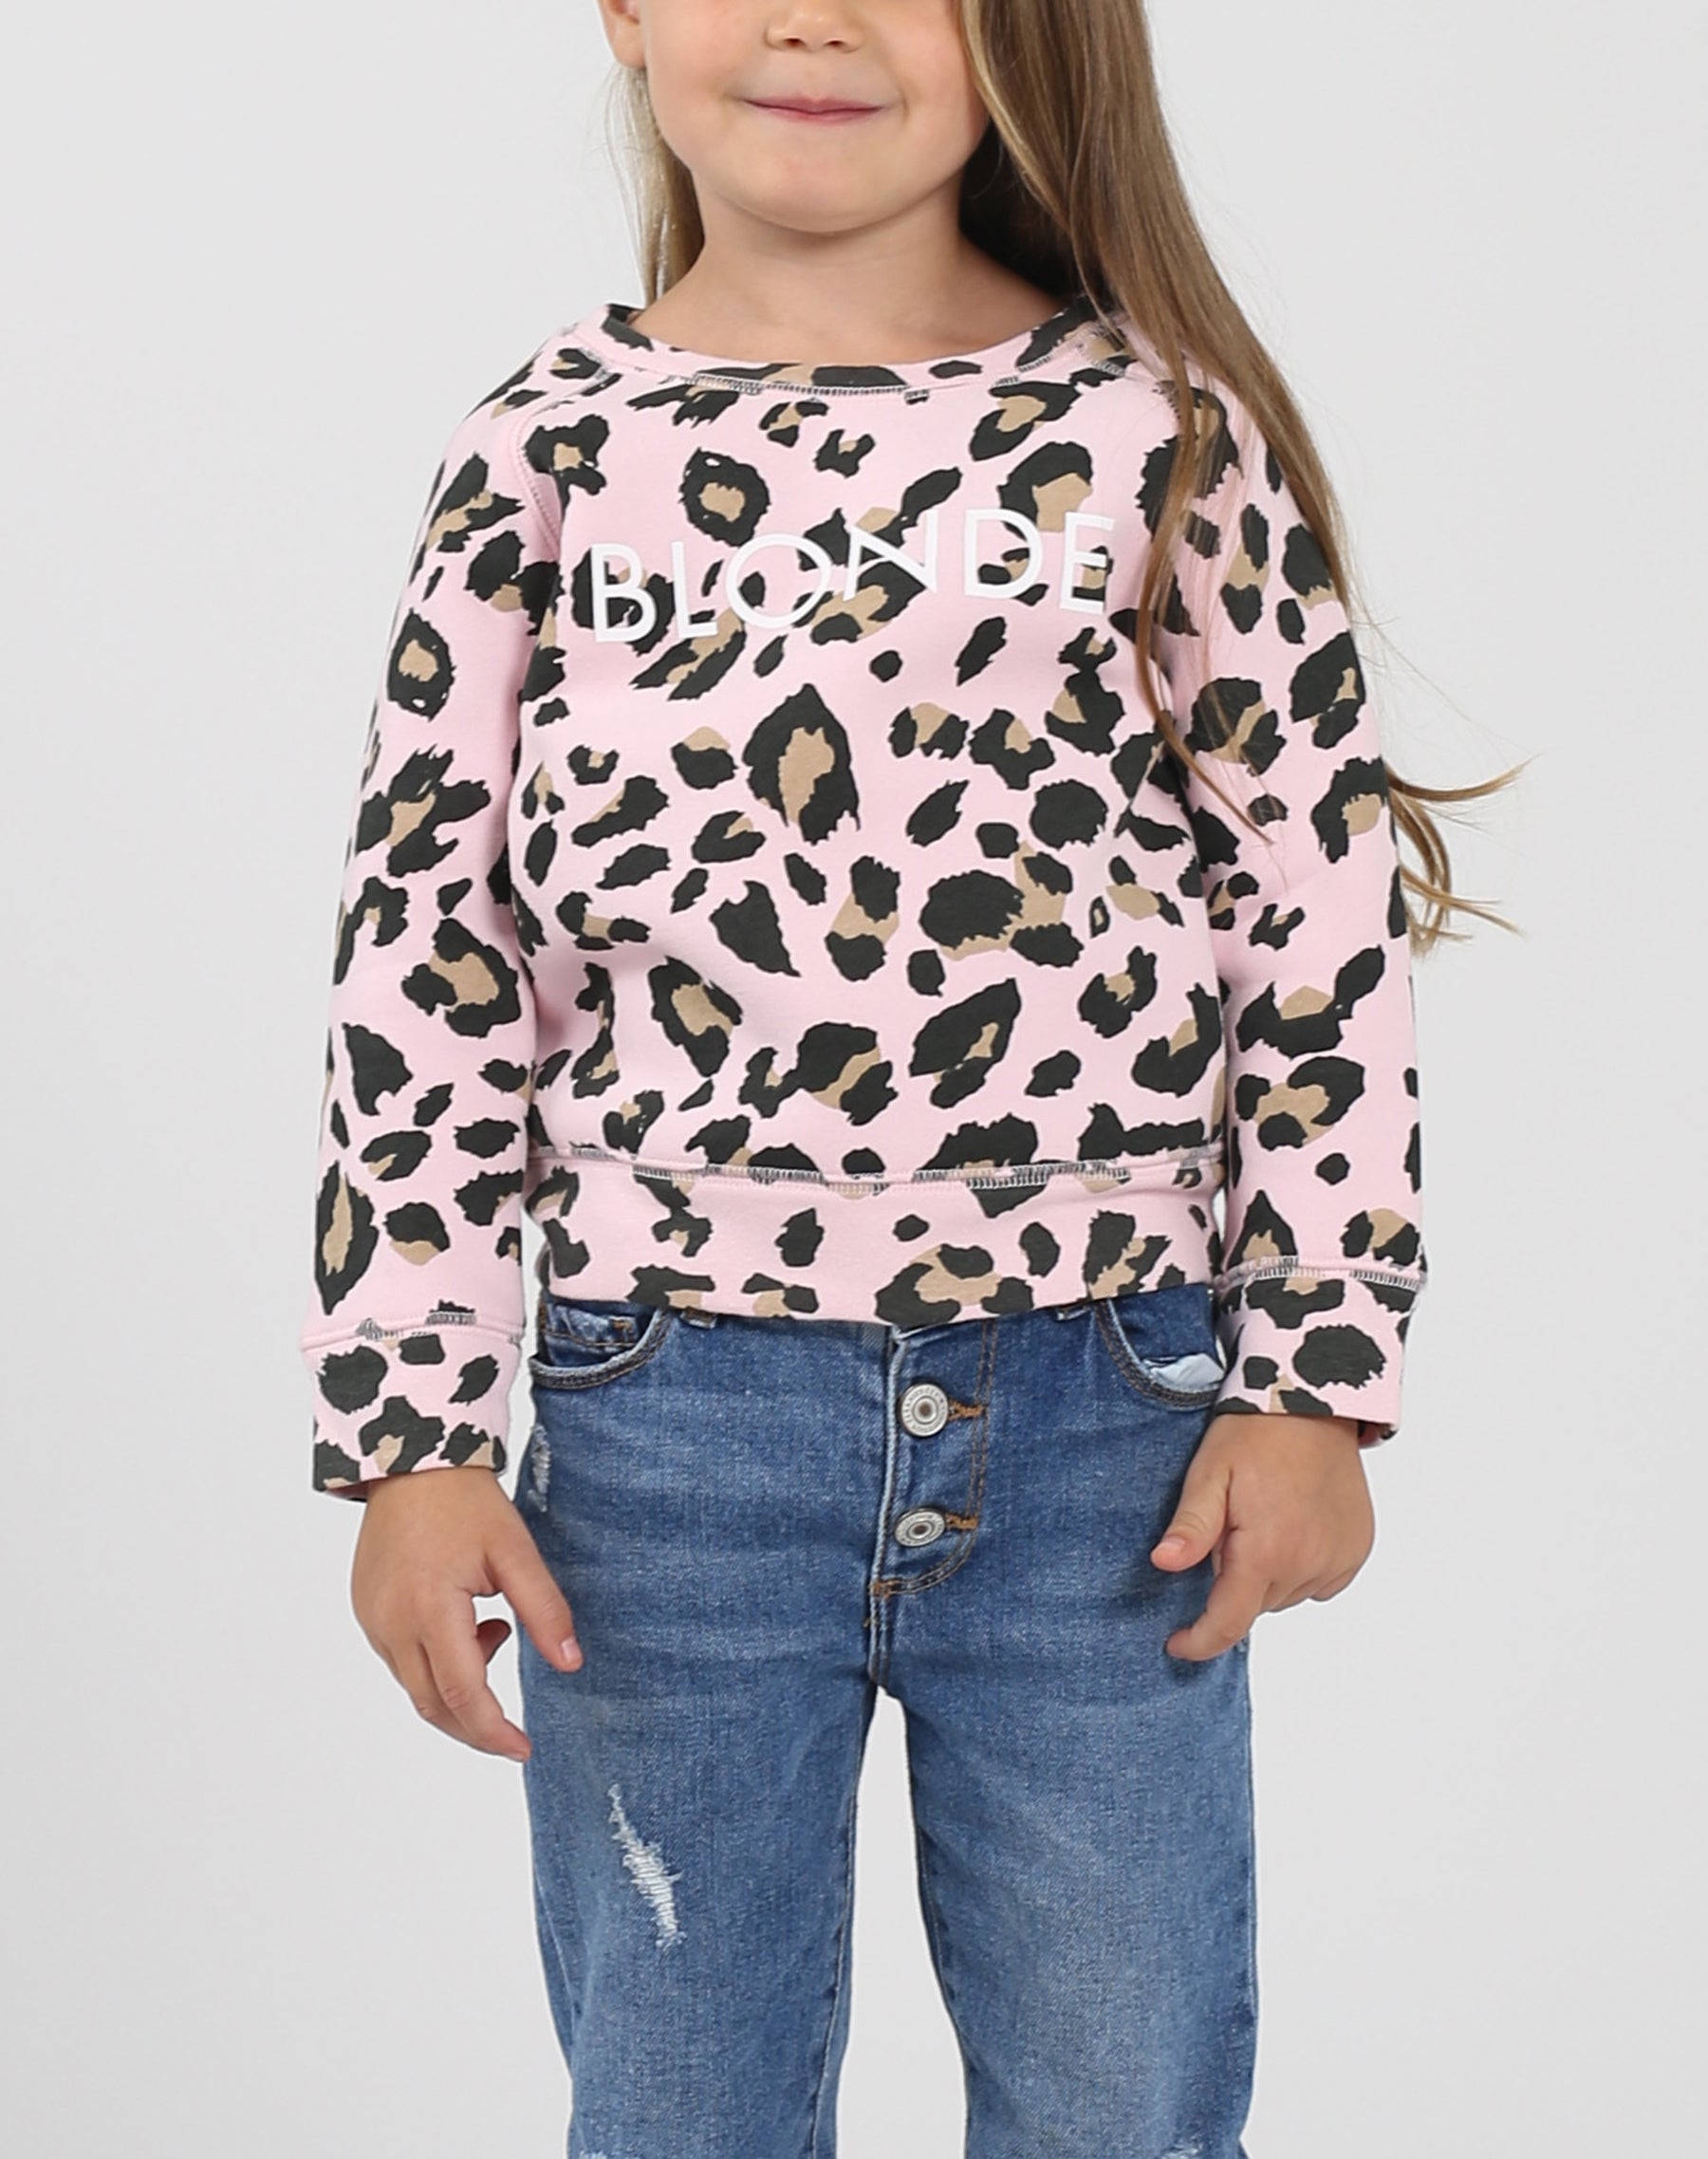 This is a photo of a model wearing the Little Babes Blonde Crew Neck Sweatshirt in Pink Leopard by Brunette The Label.